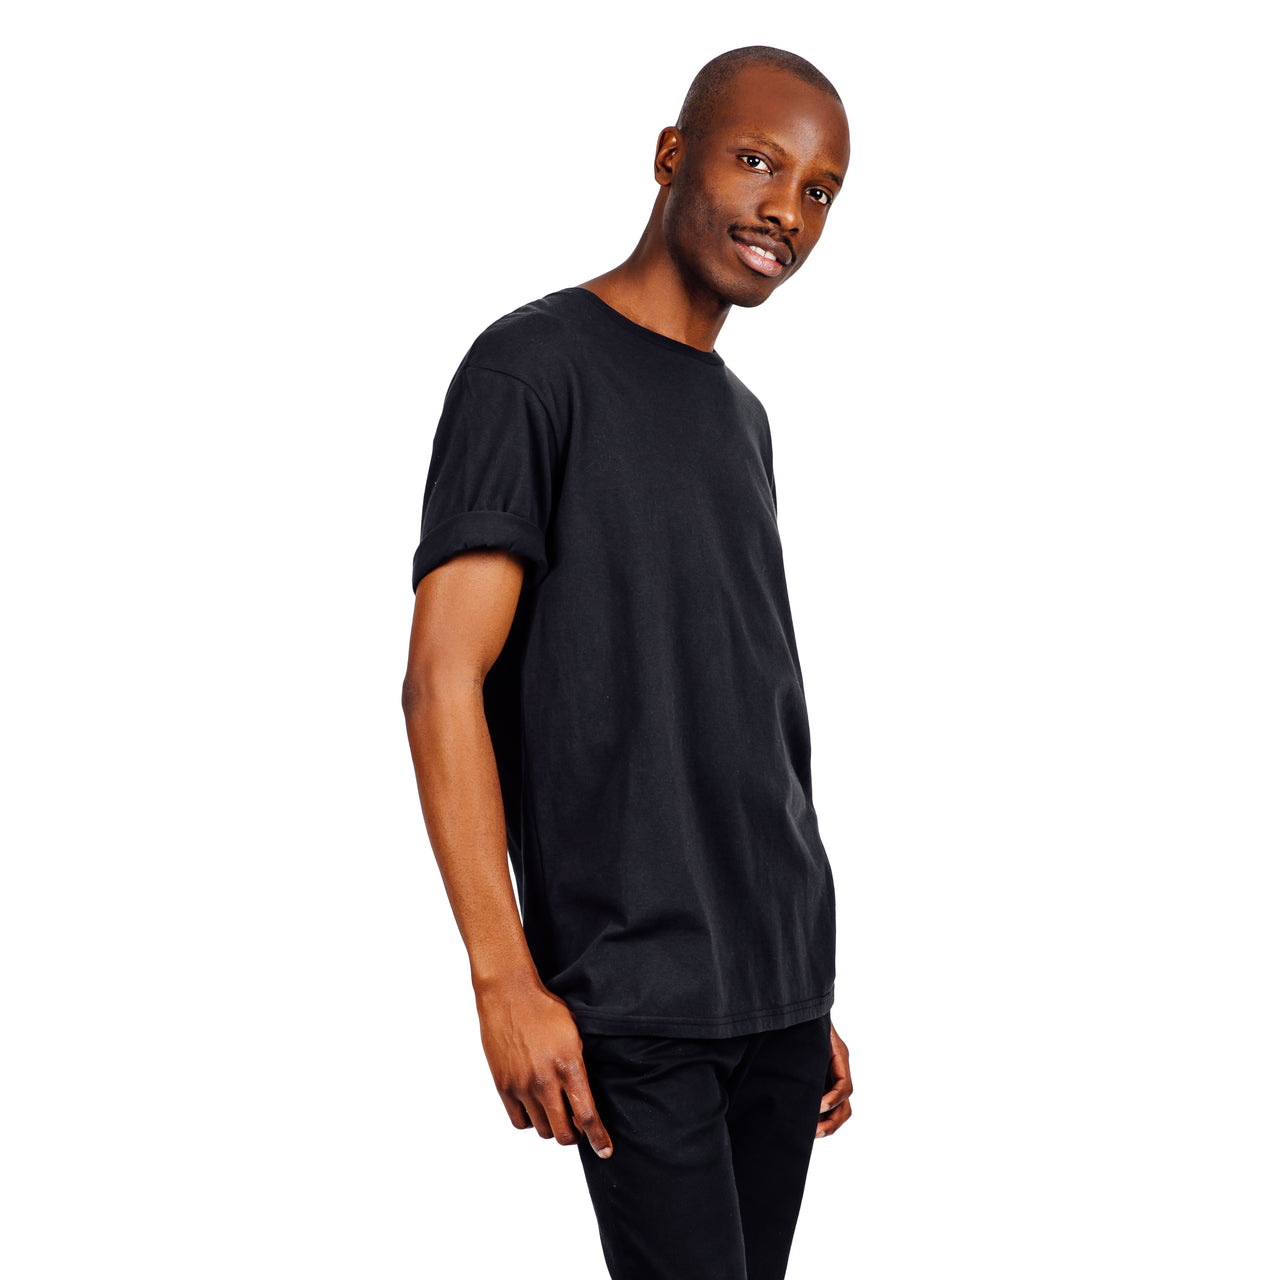 Men's Relaxed Fit Tee - Black